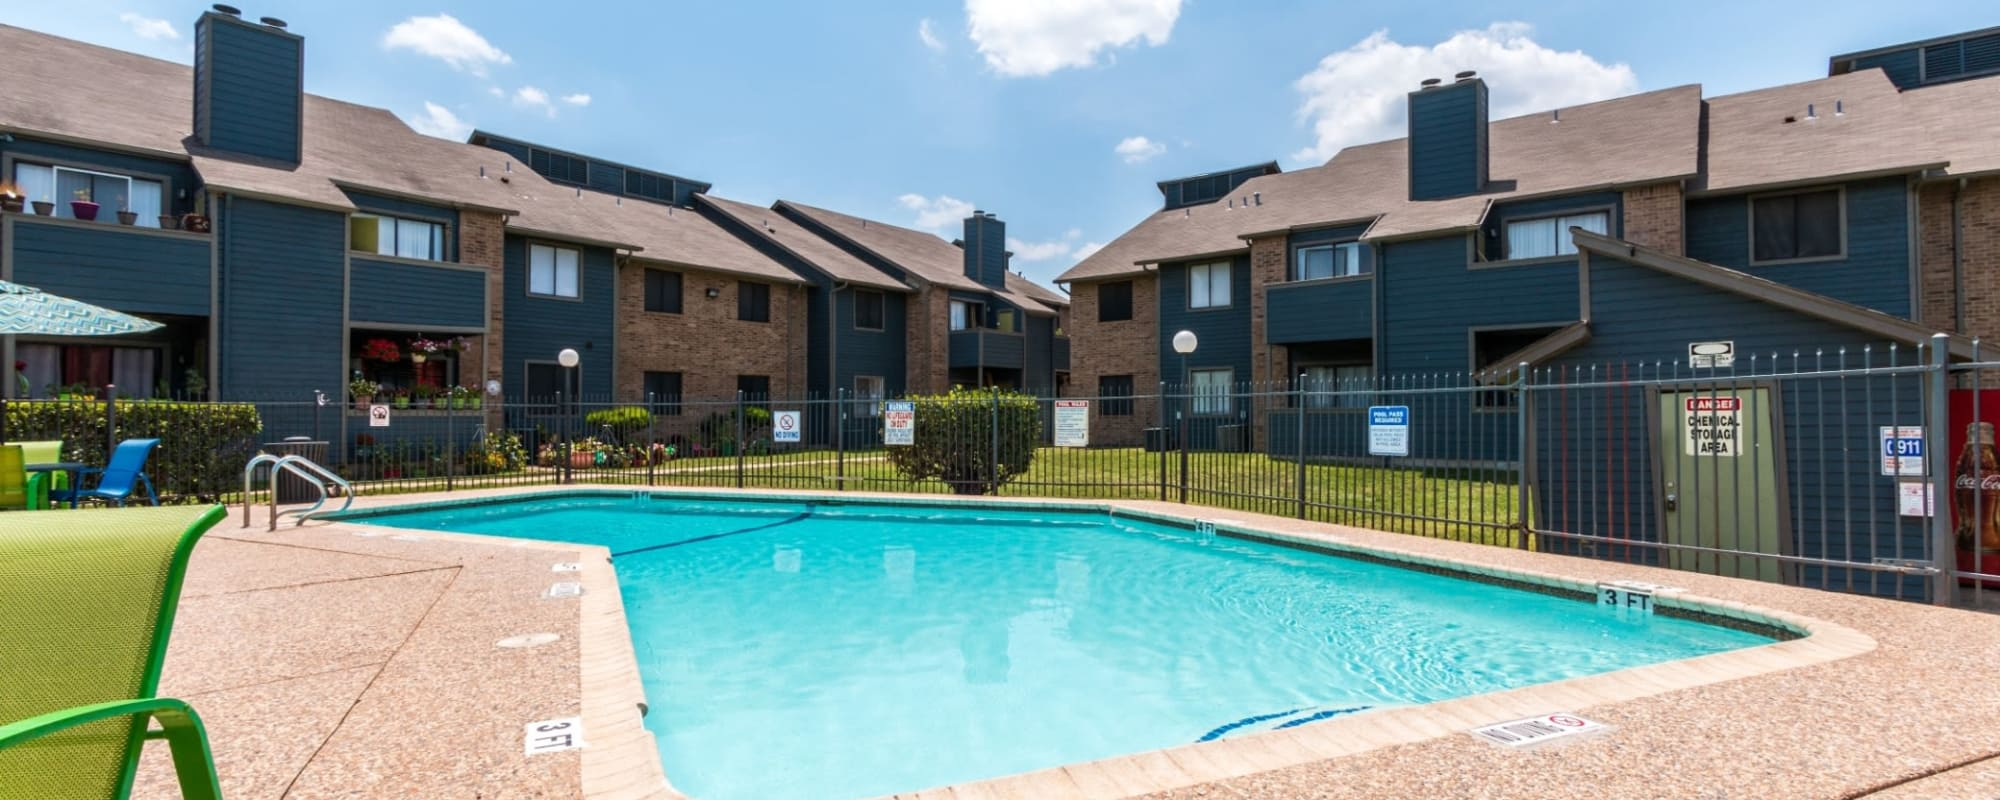 Community pool at Northchase Apartments in Austin, Texas